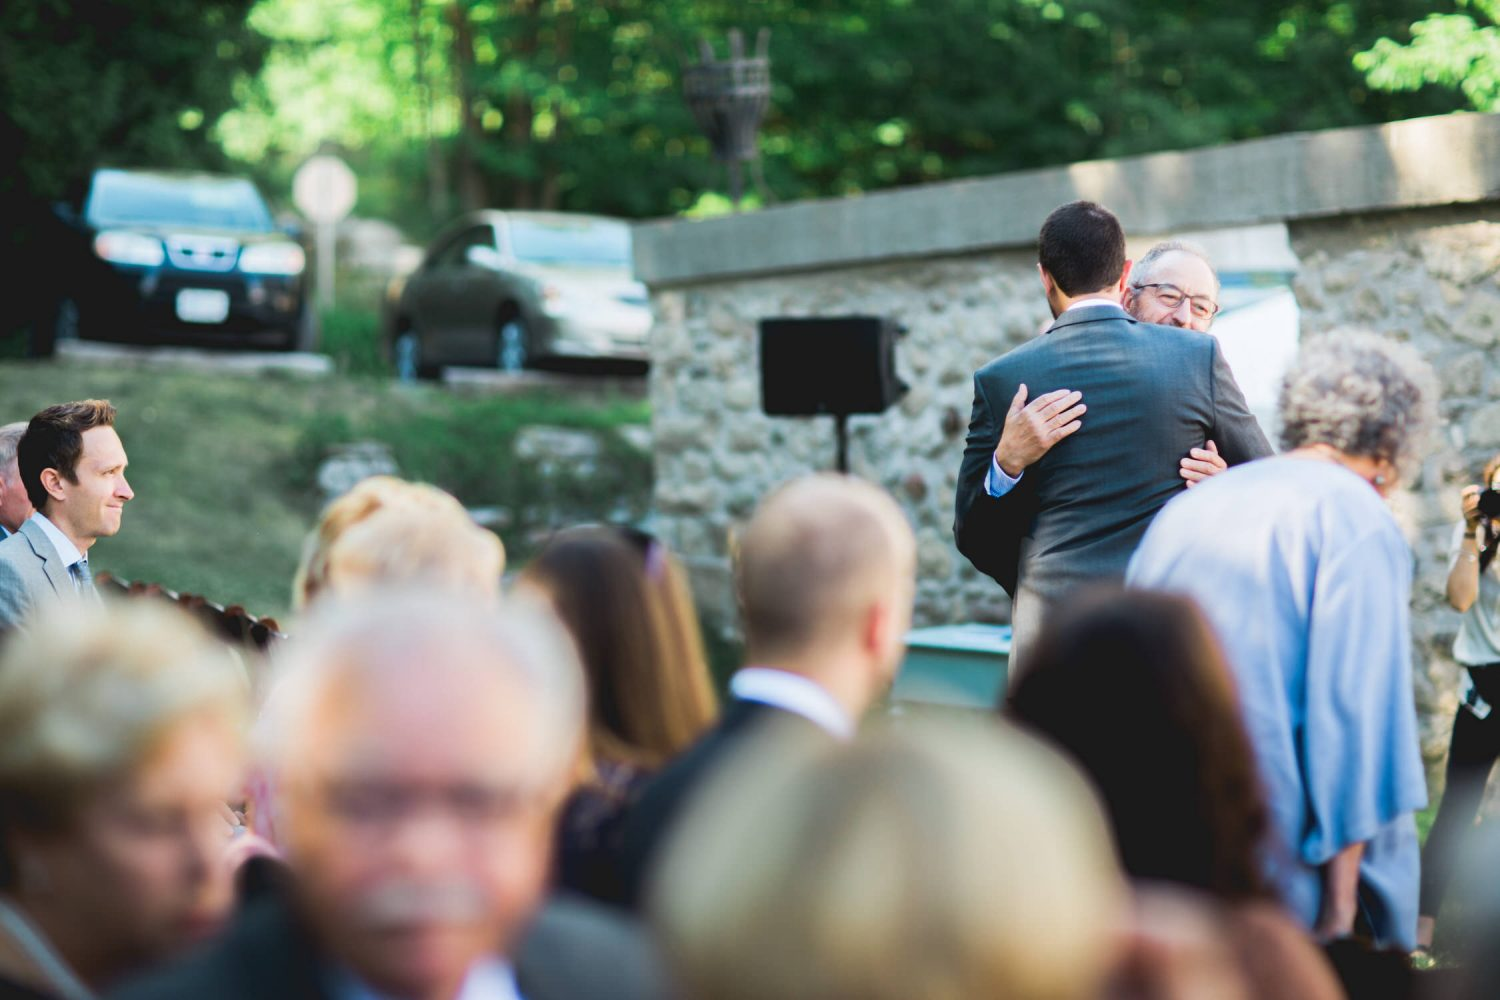 Groom shares a hug with father during ceremony